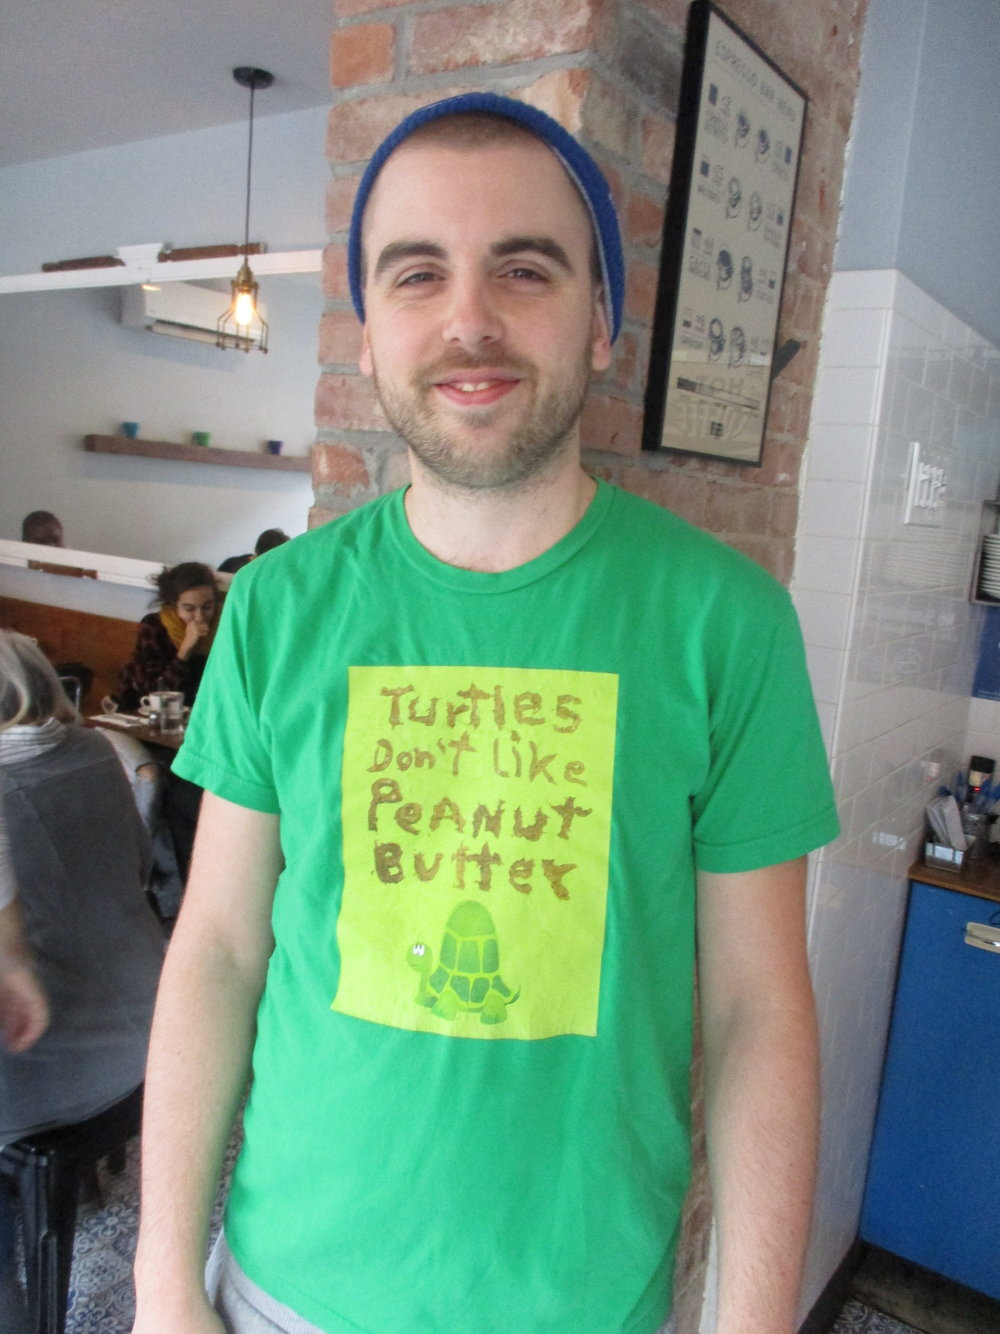 Shirt put out be Stephen Colbert's political action committee. Yeah, that thing about turtles....